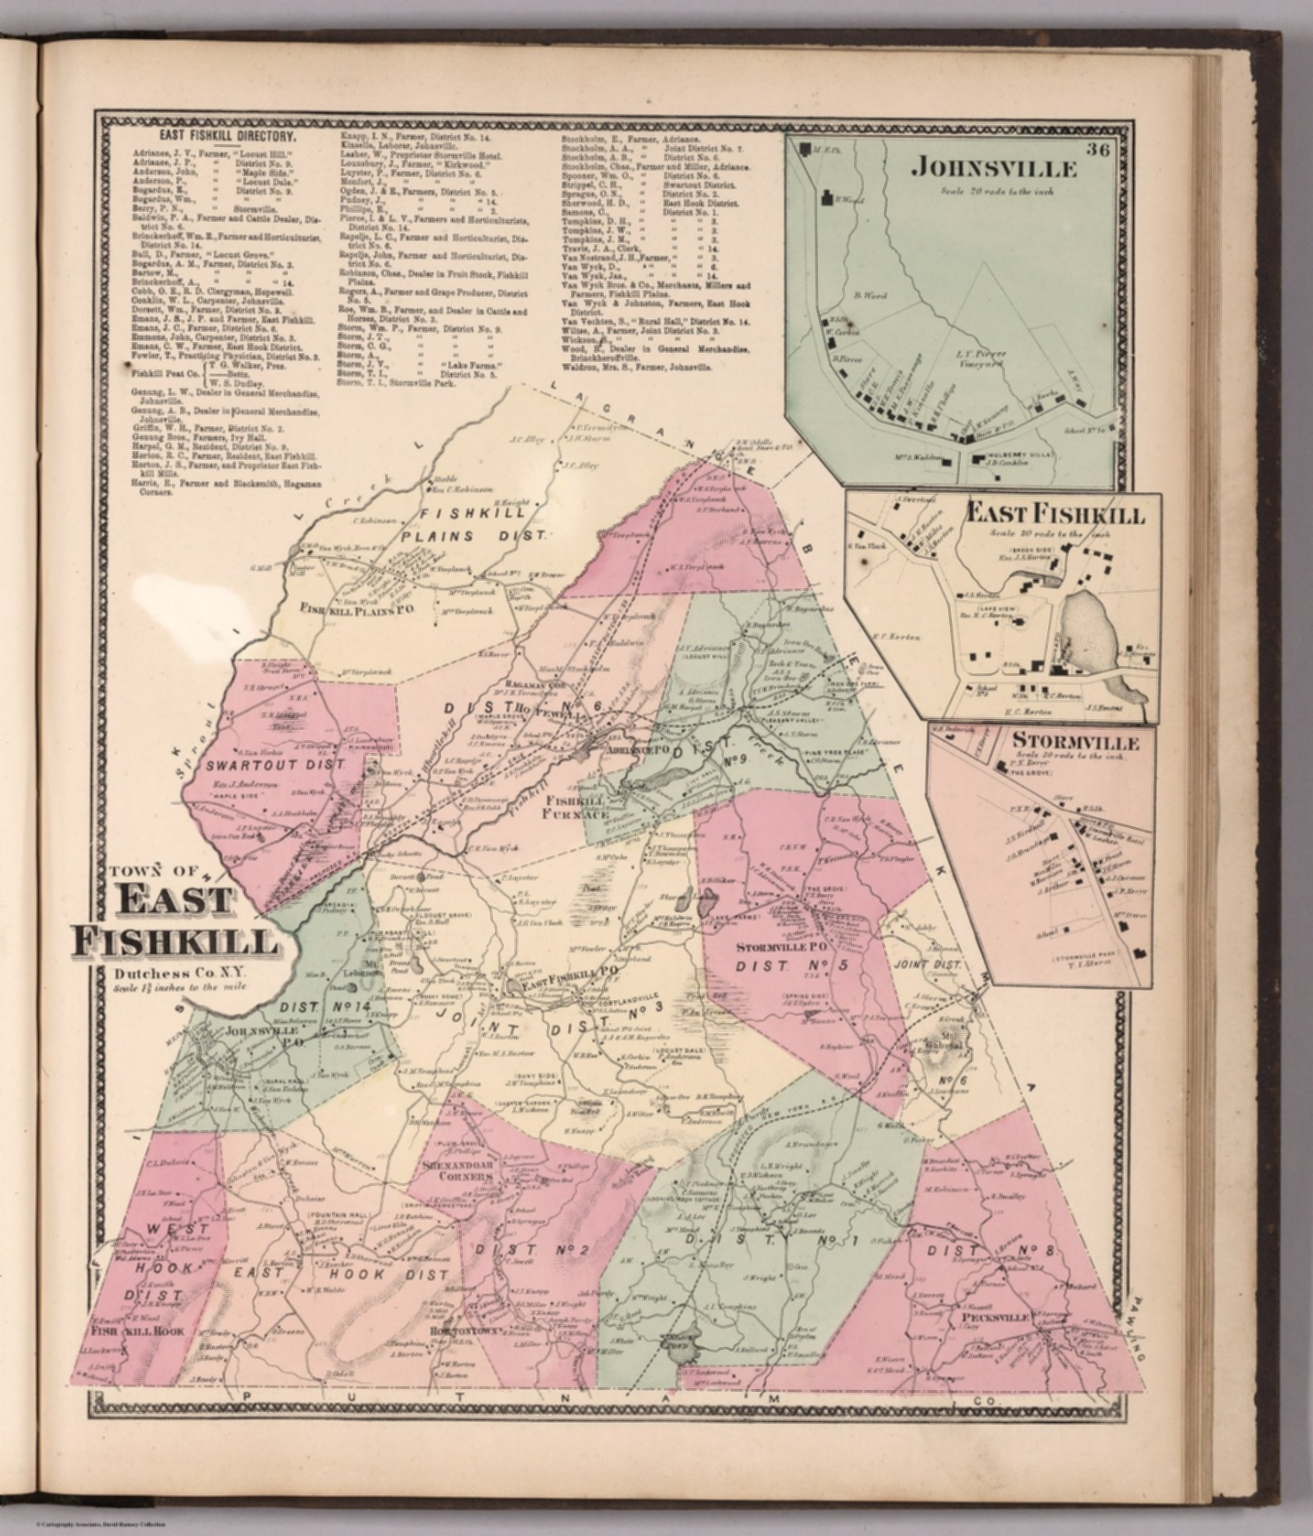 Town of East Fishkill. (insets) Johnsville. East Fishkill ... Old Map Of Snyder County on old maps of columbia county, old schools in st. croix county wi, old texas state map,